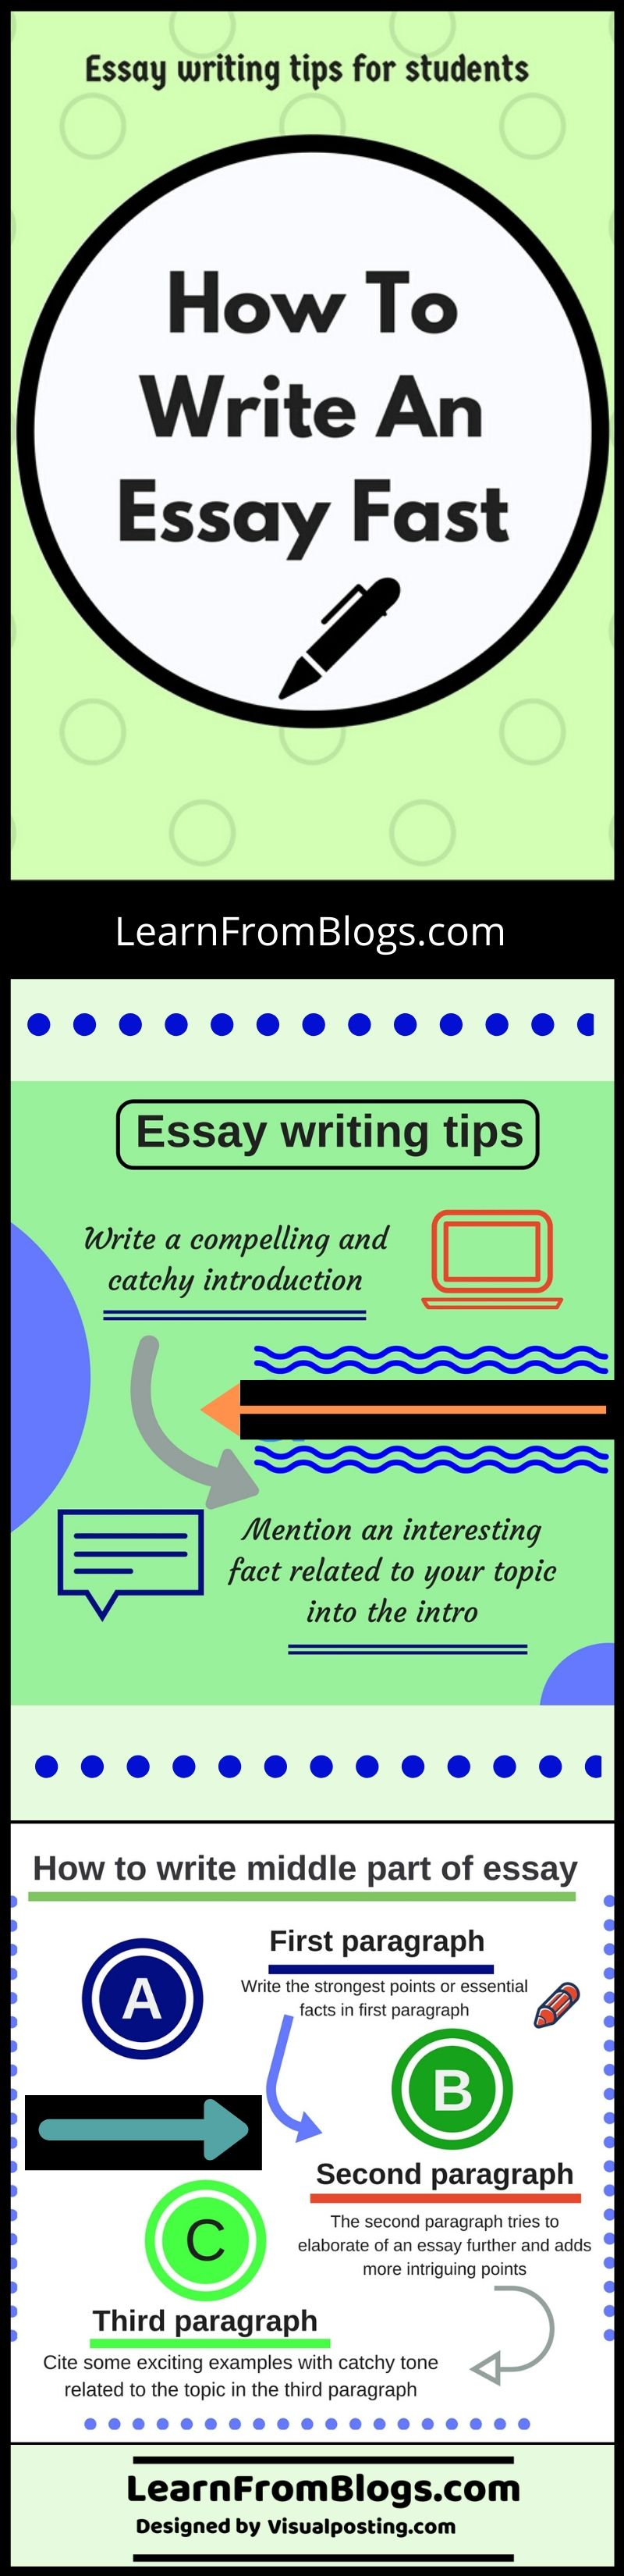 How to write an essay fast and well.jpg